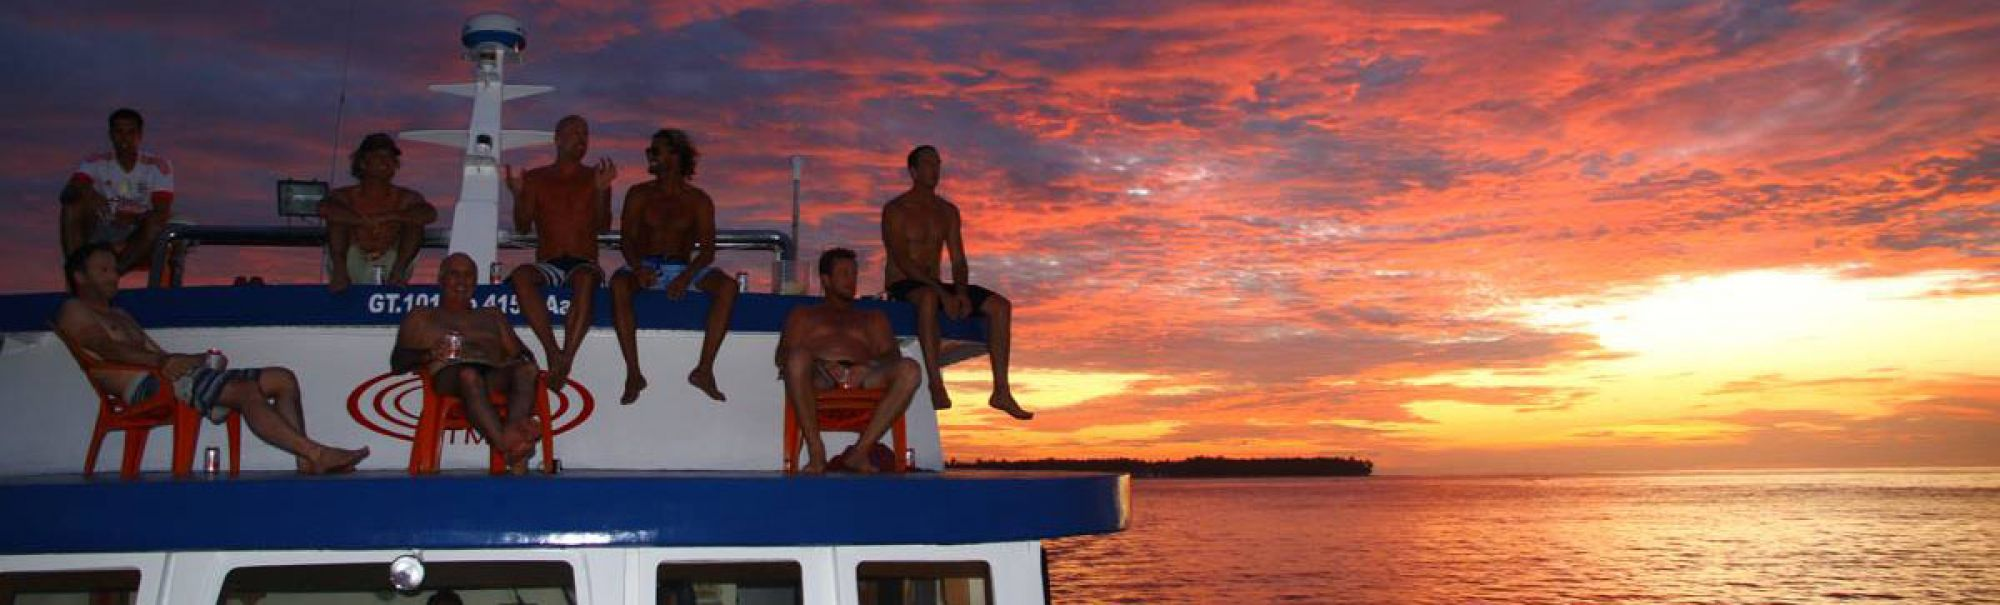 charter boat mentawai islands